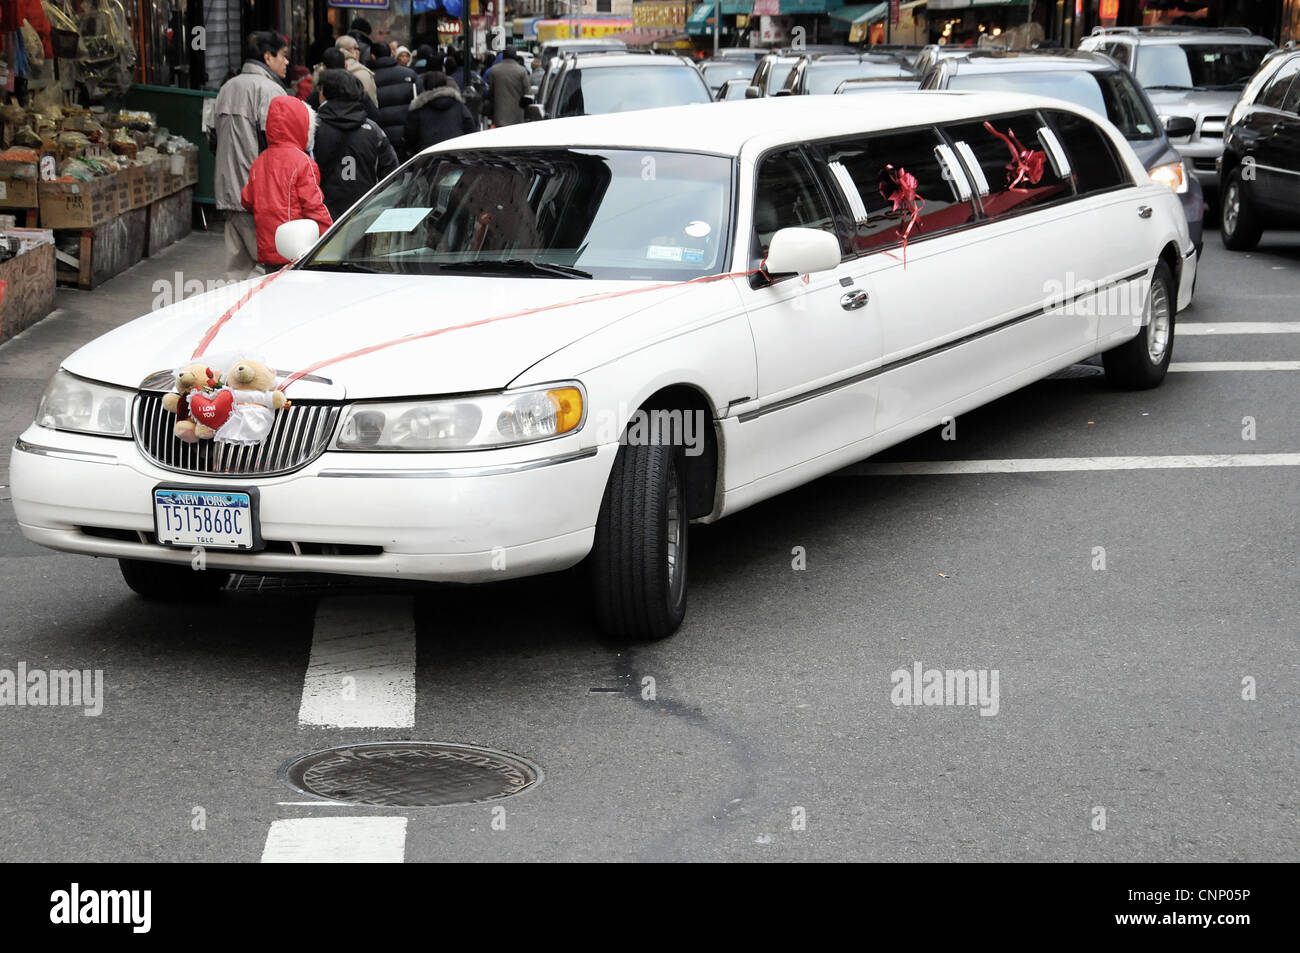 Wedding Lincoln Limousine In New York City Usa Stock Photo